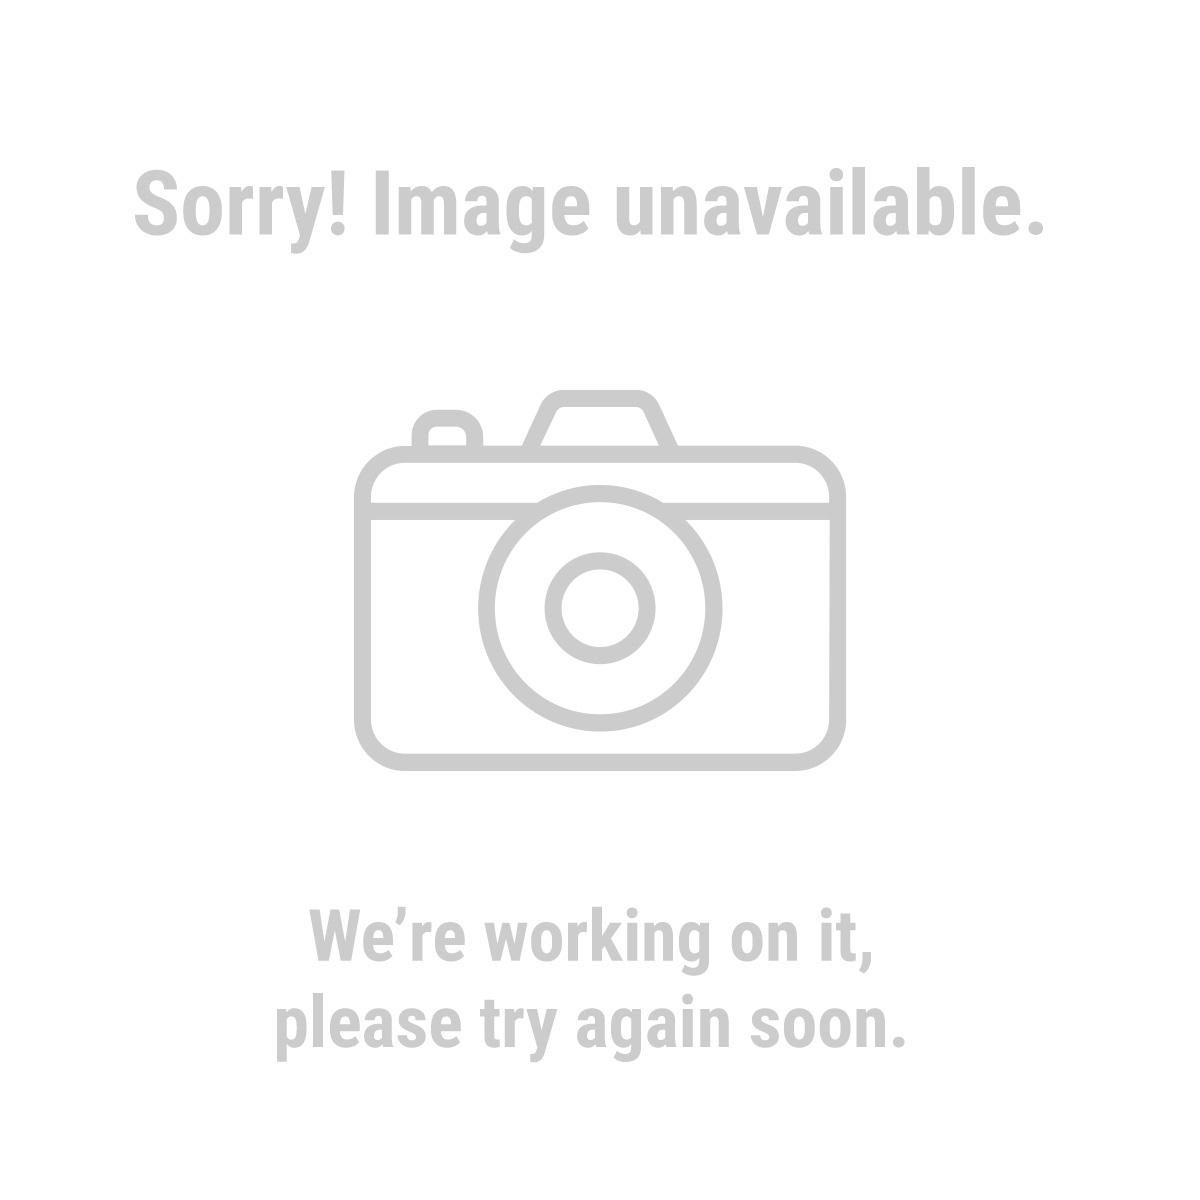 Pittsburgh 61249 3 Piece Curved Jaw Locking Pliers Set